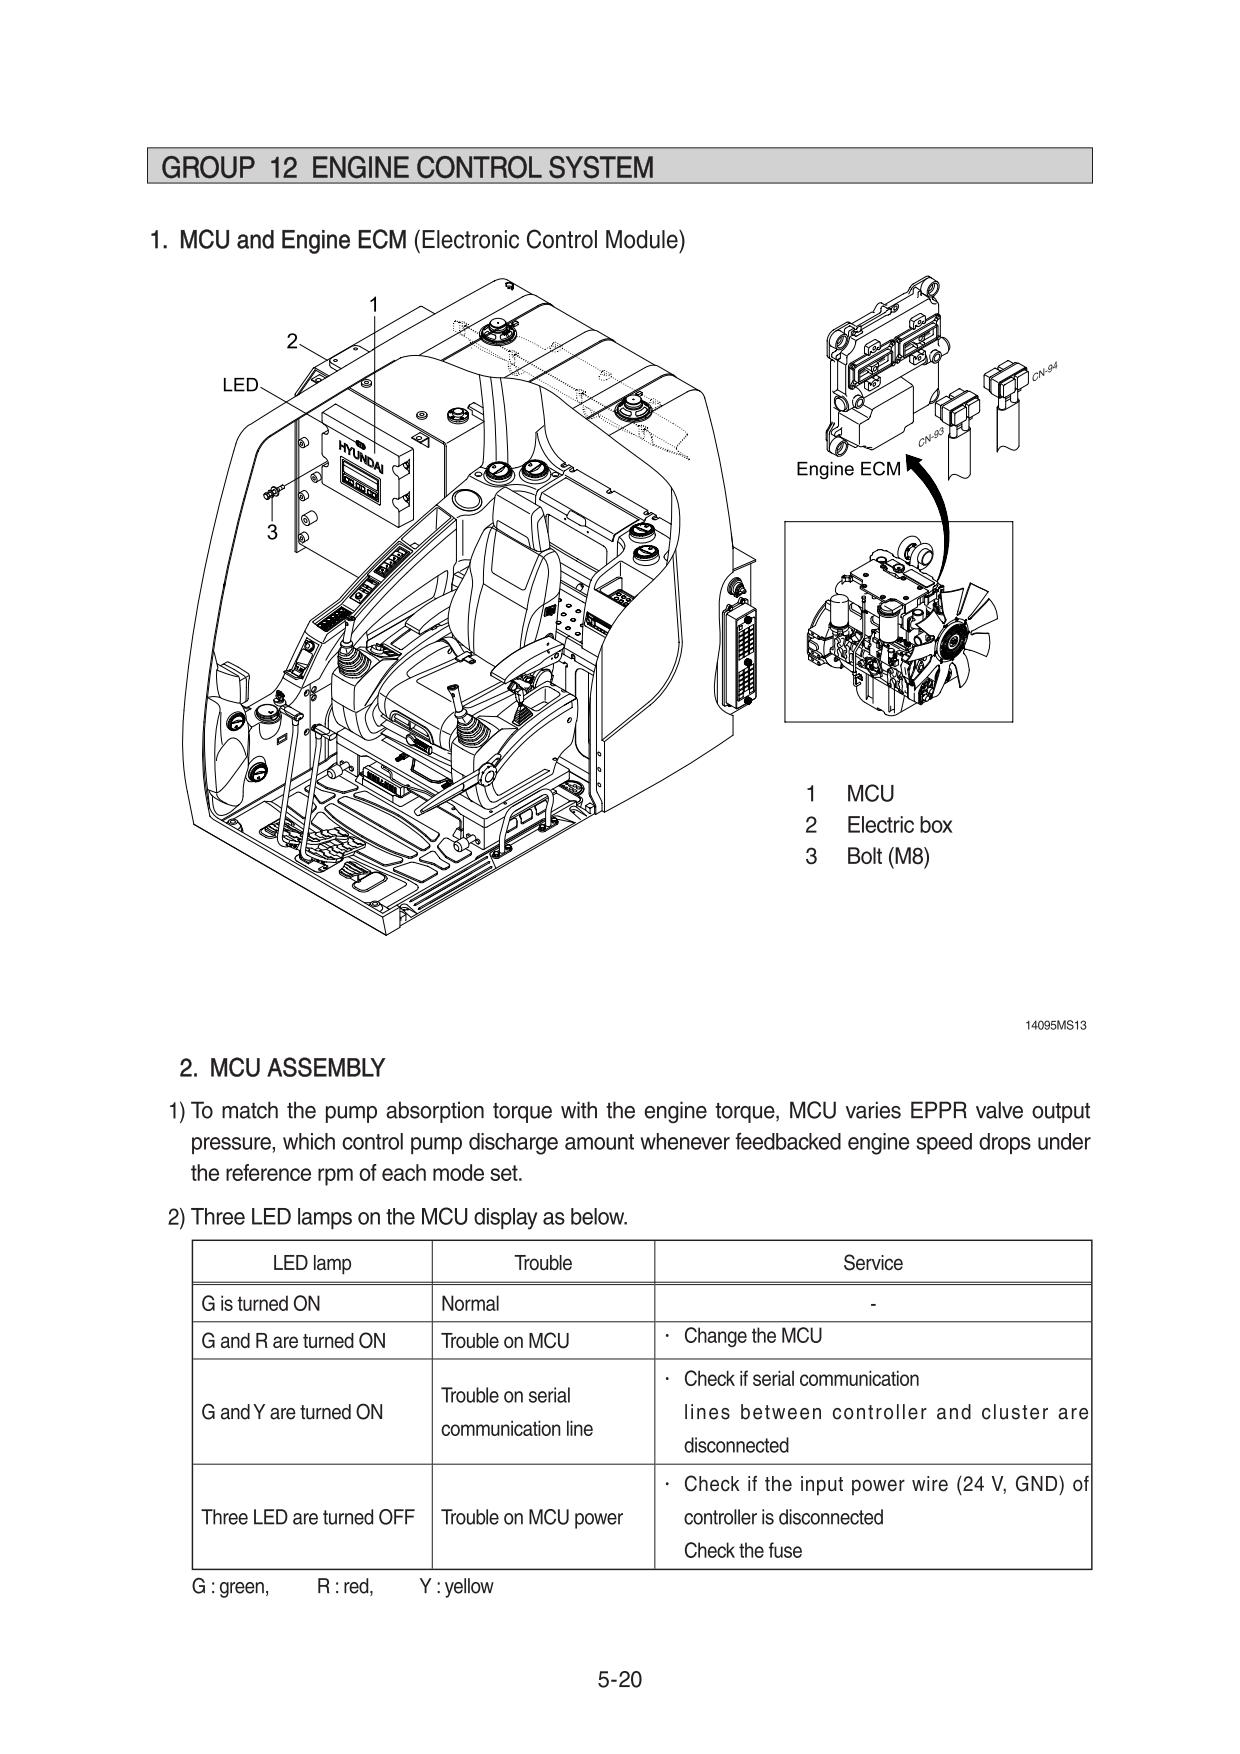 Guidelines for repair and maintenance of Hyundai R160 180L